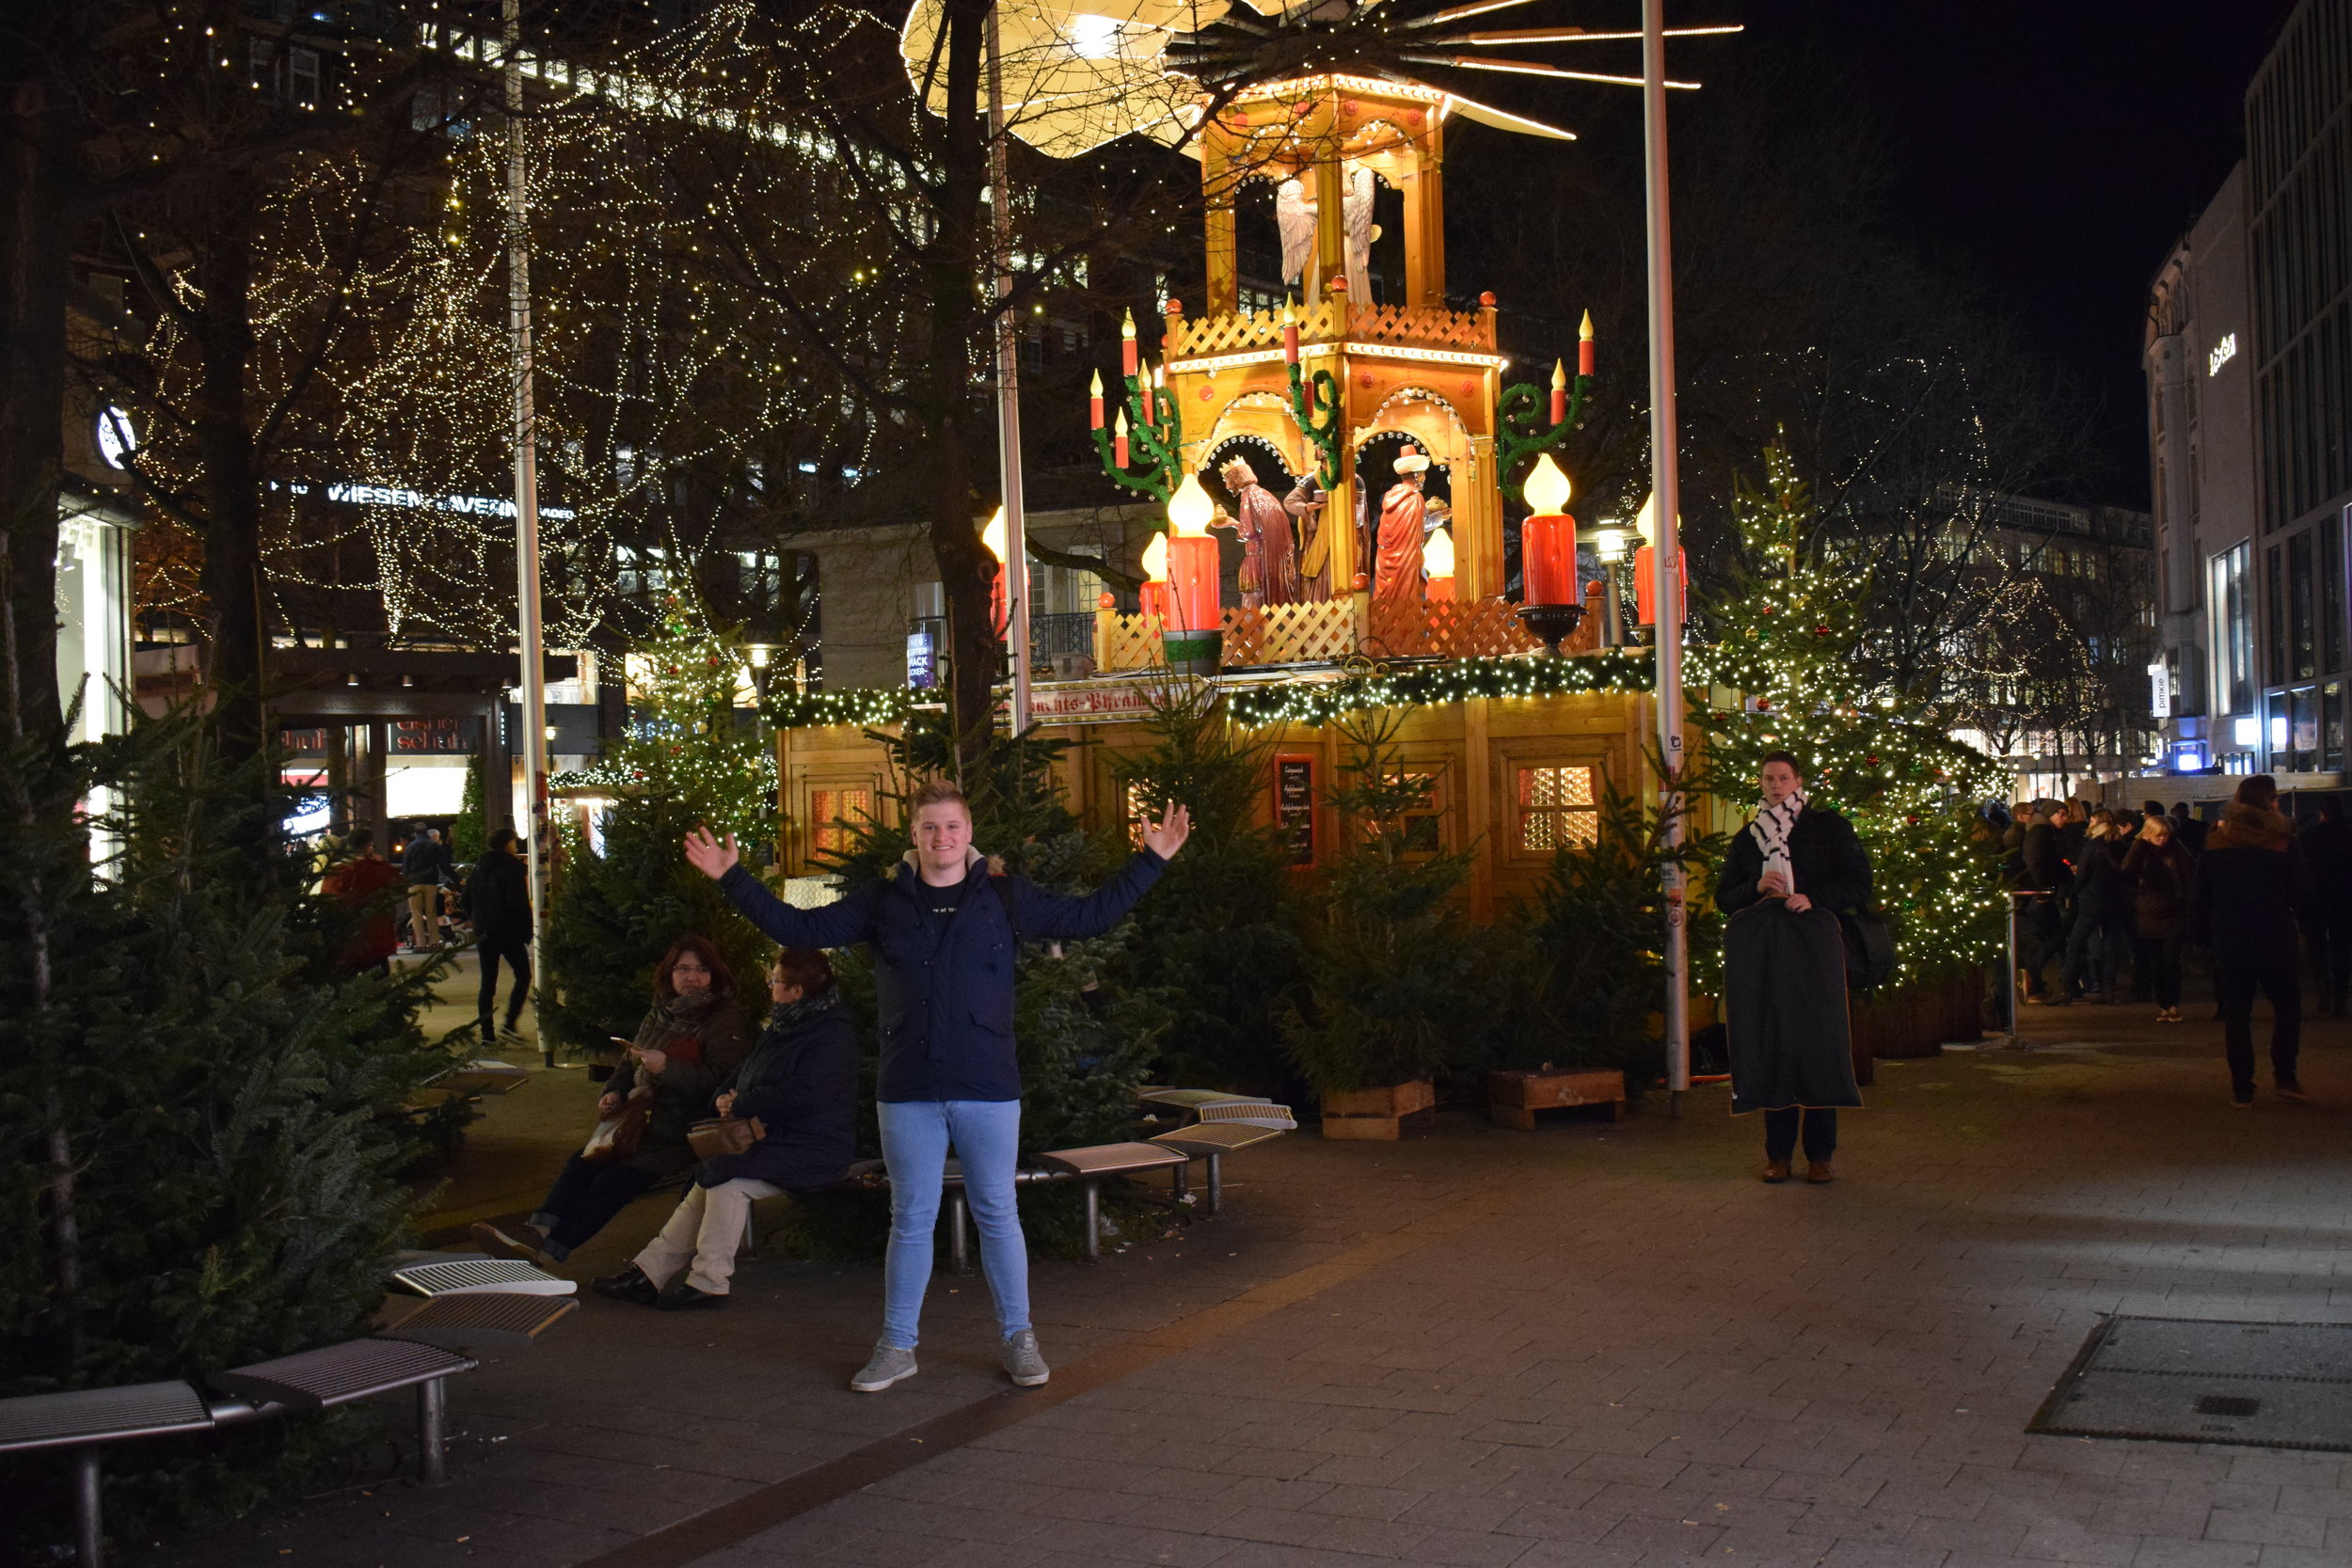 I couldn't resist a good old Christmas market - even over 96 hours since the day of celebration drew to a close.